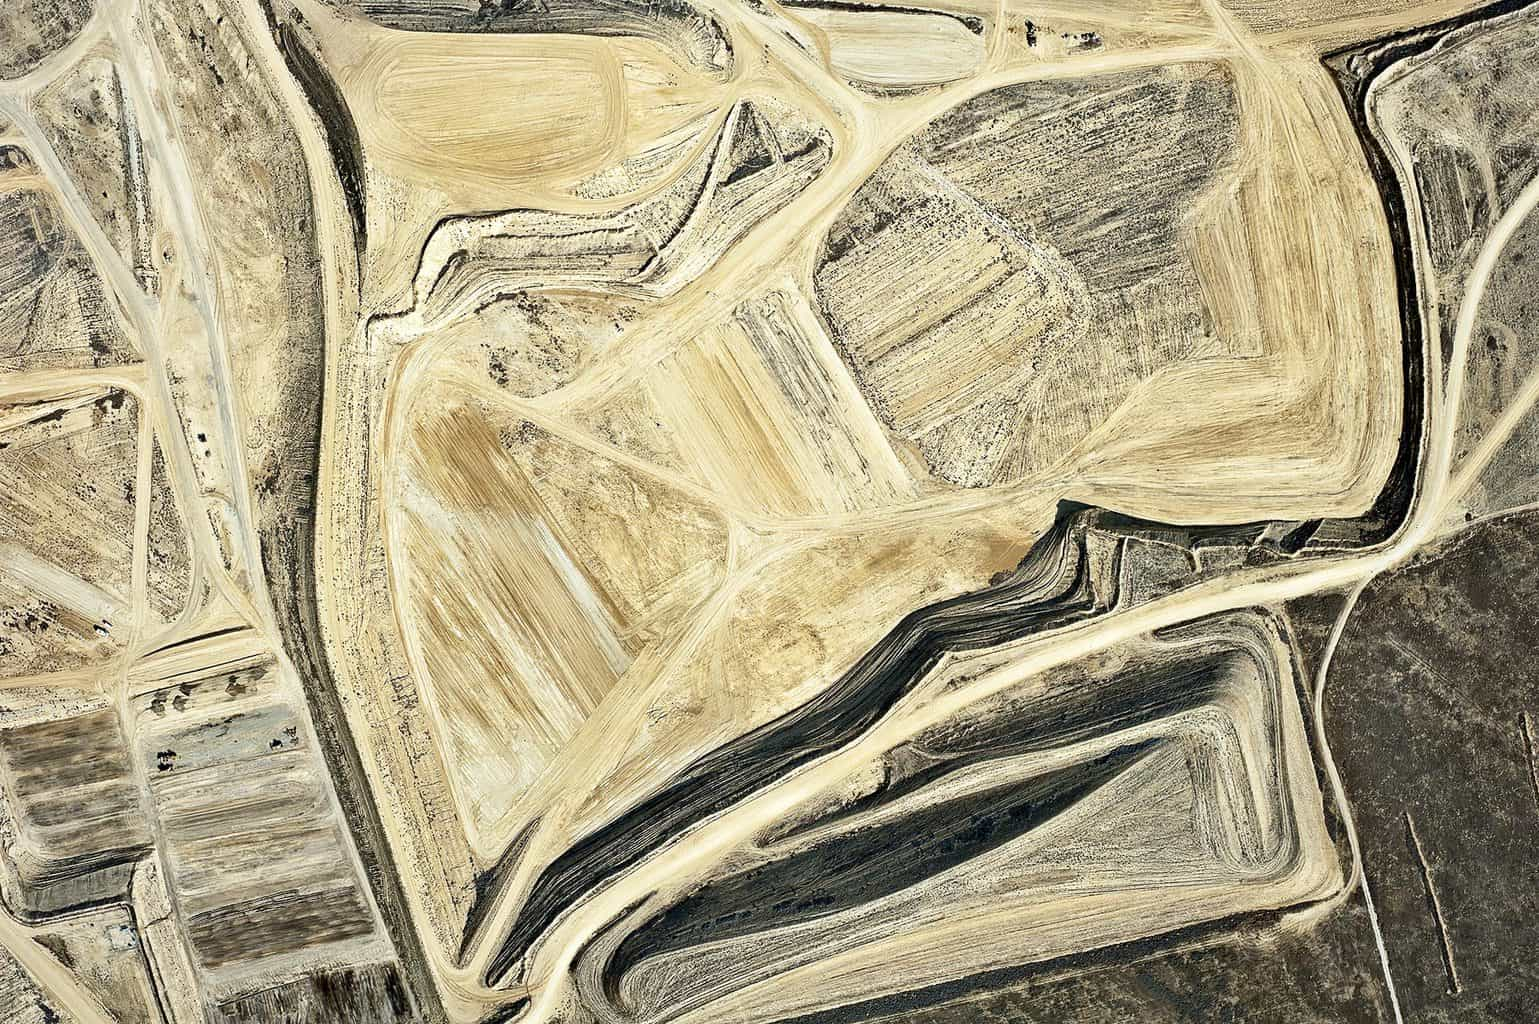 Oil #002, Mulholland's Gold, 2011-2014